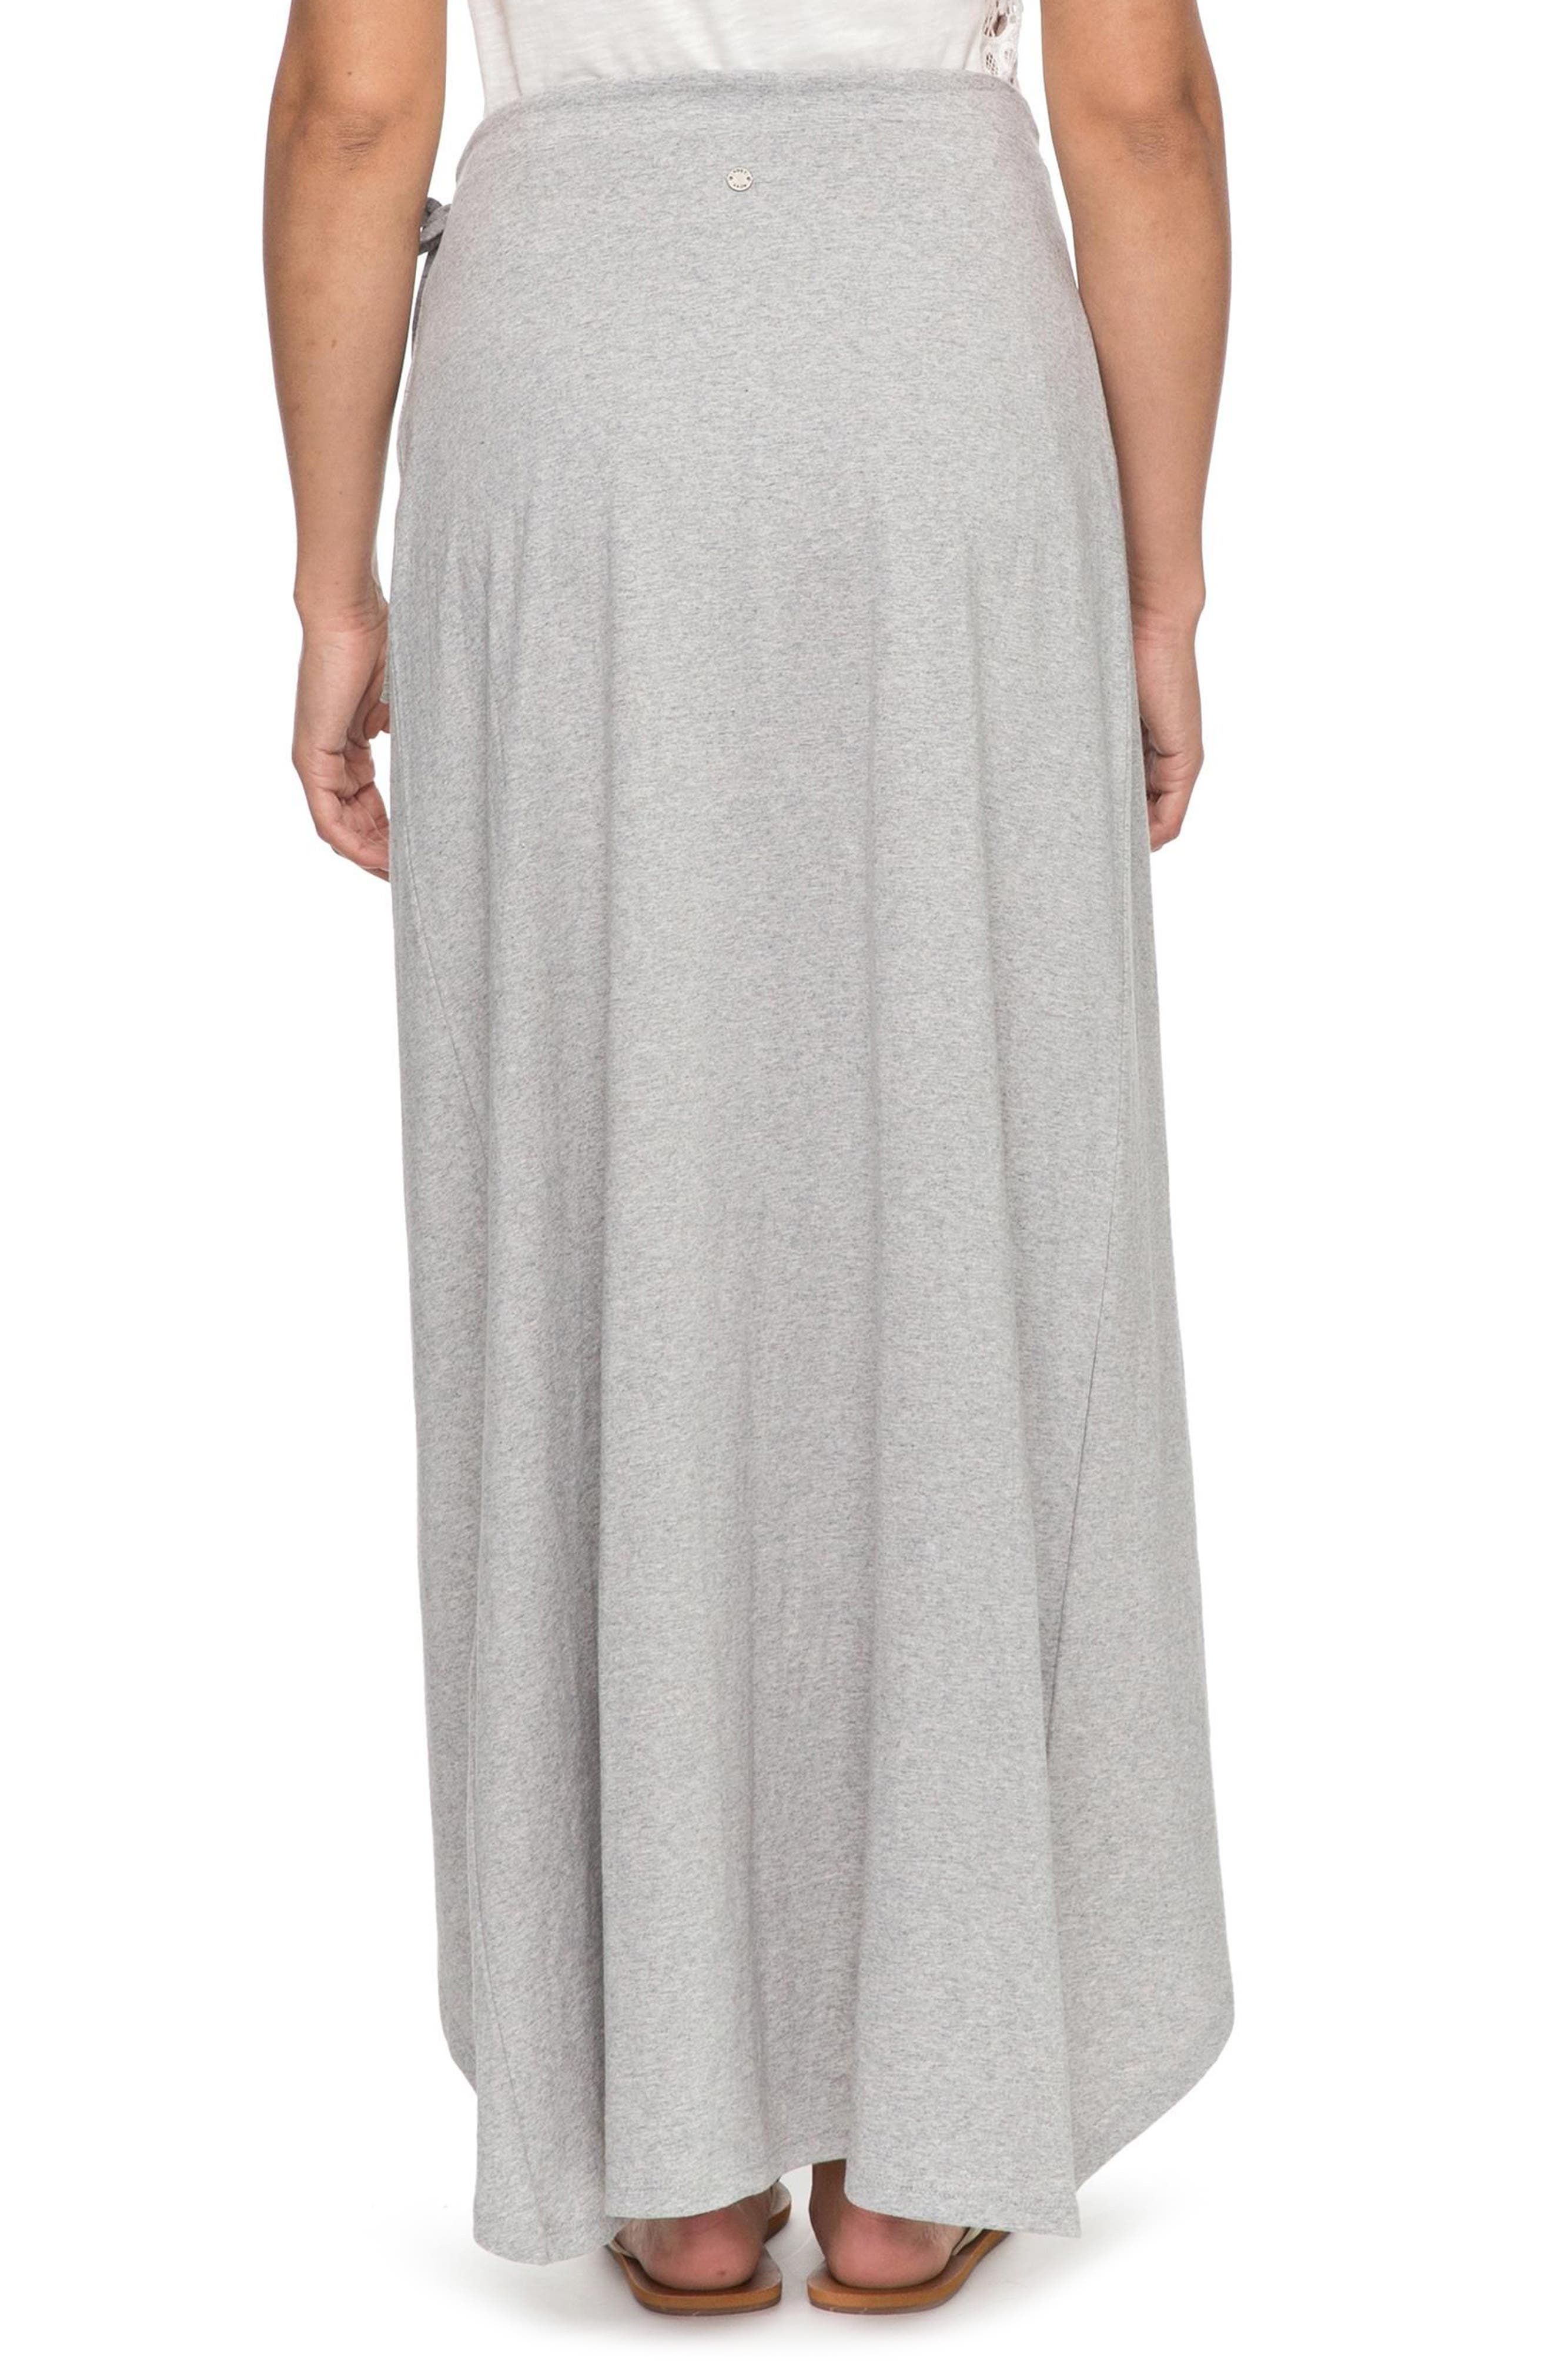 Everlasting Afternoon Long Wrap Skirt,                             Alternate thumbnail 3, color,                             Heritage Heather